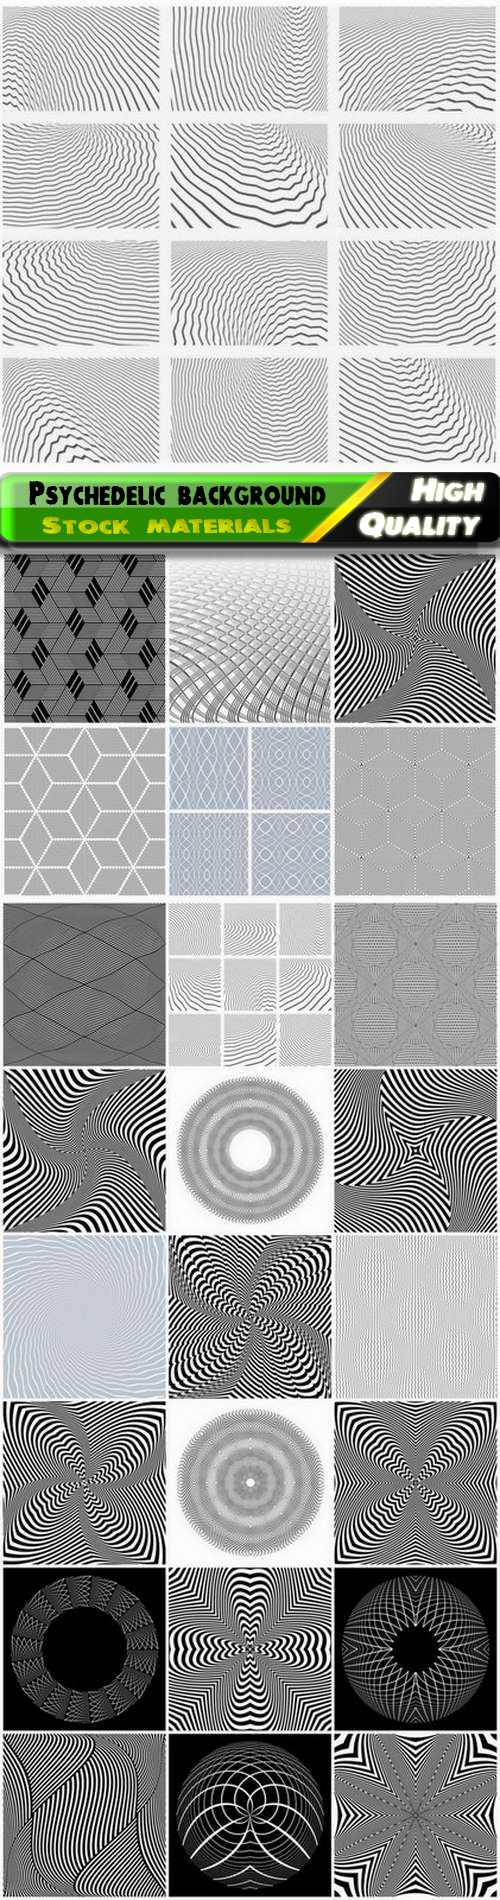 Abstract linear psychedelic background with optical illusion 25 Eps